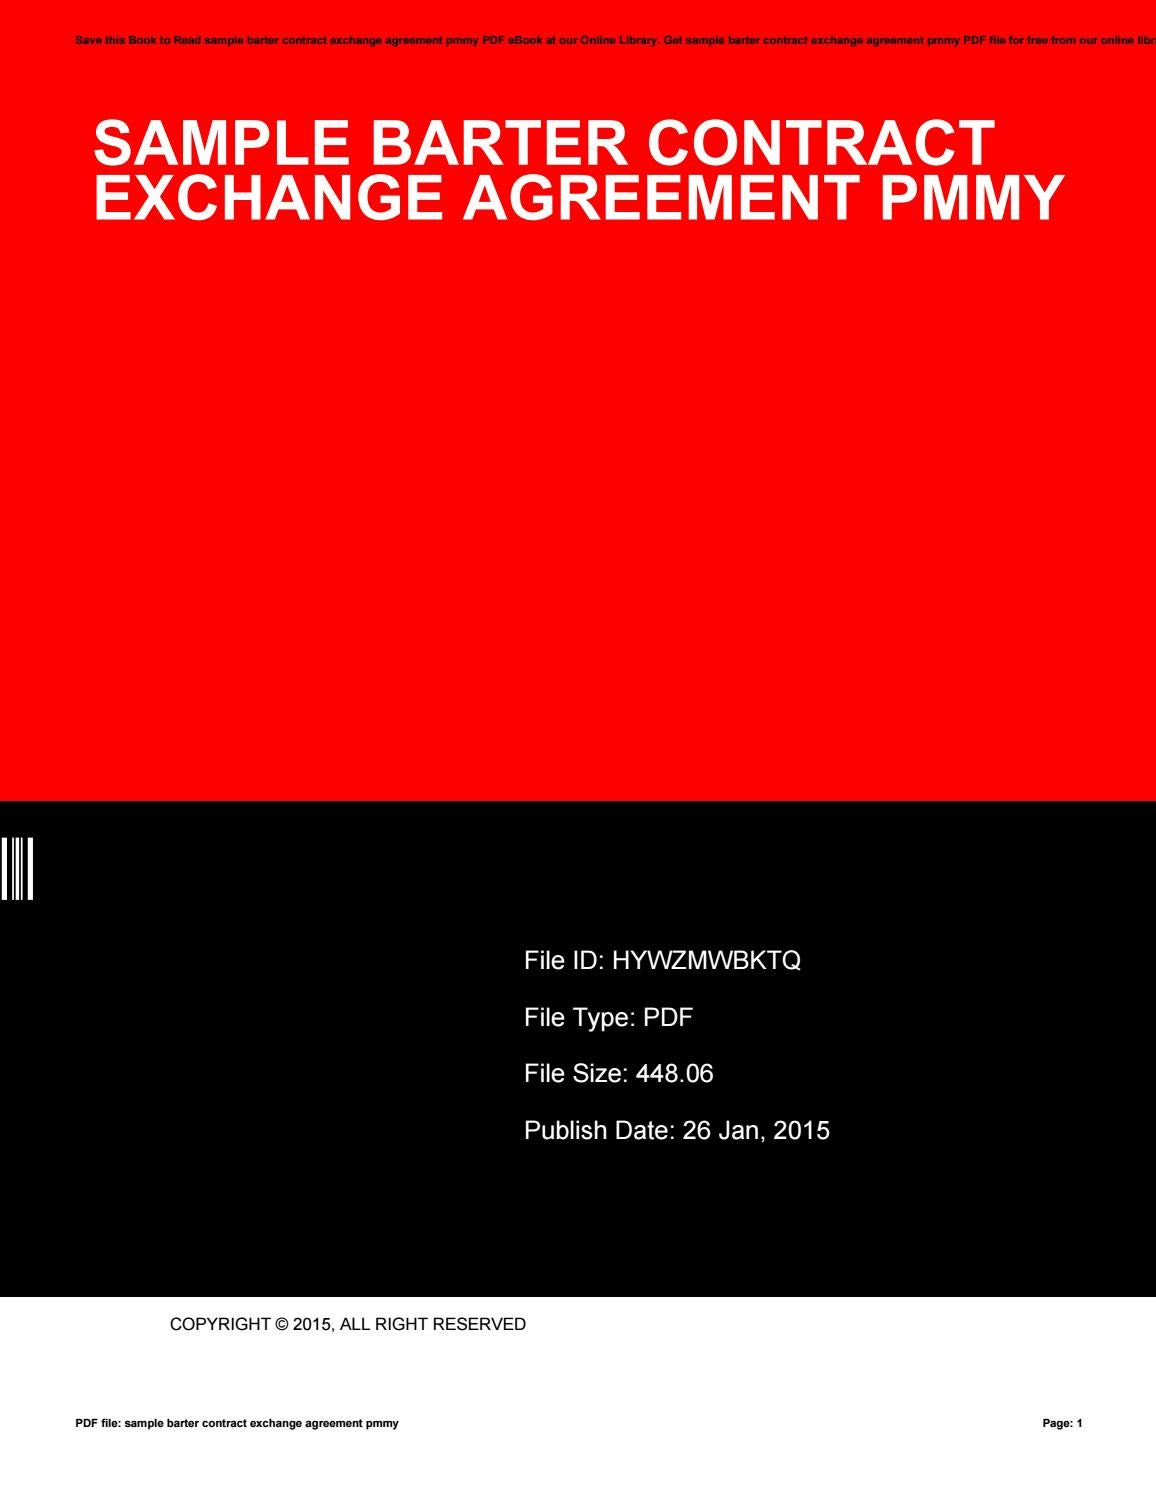 Sample Barter Contract Exchange Agreement Pmmy By Aju24